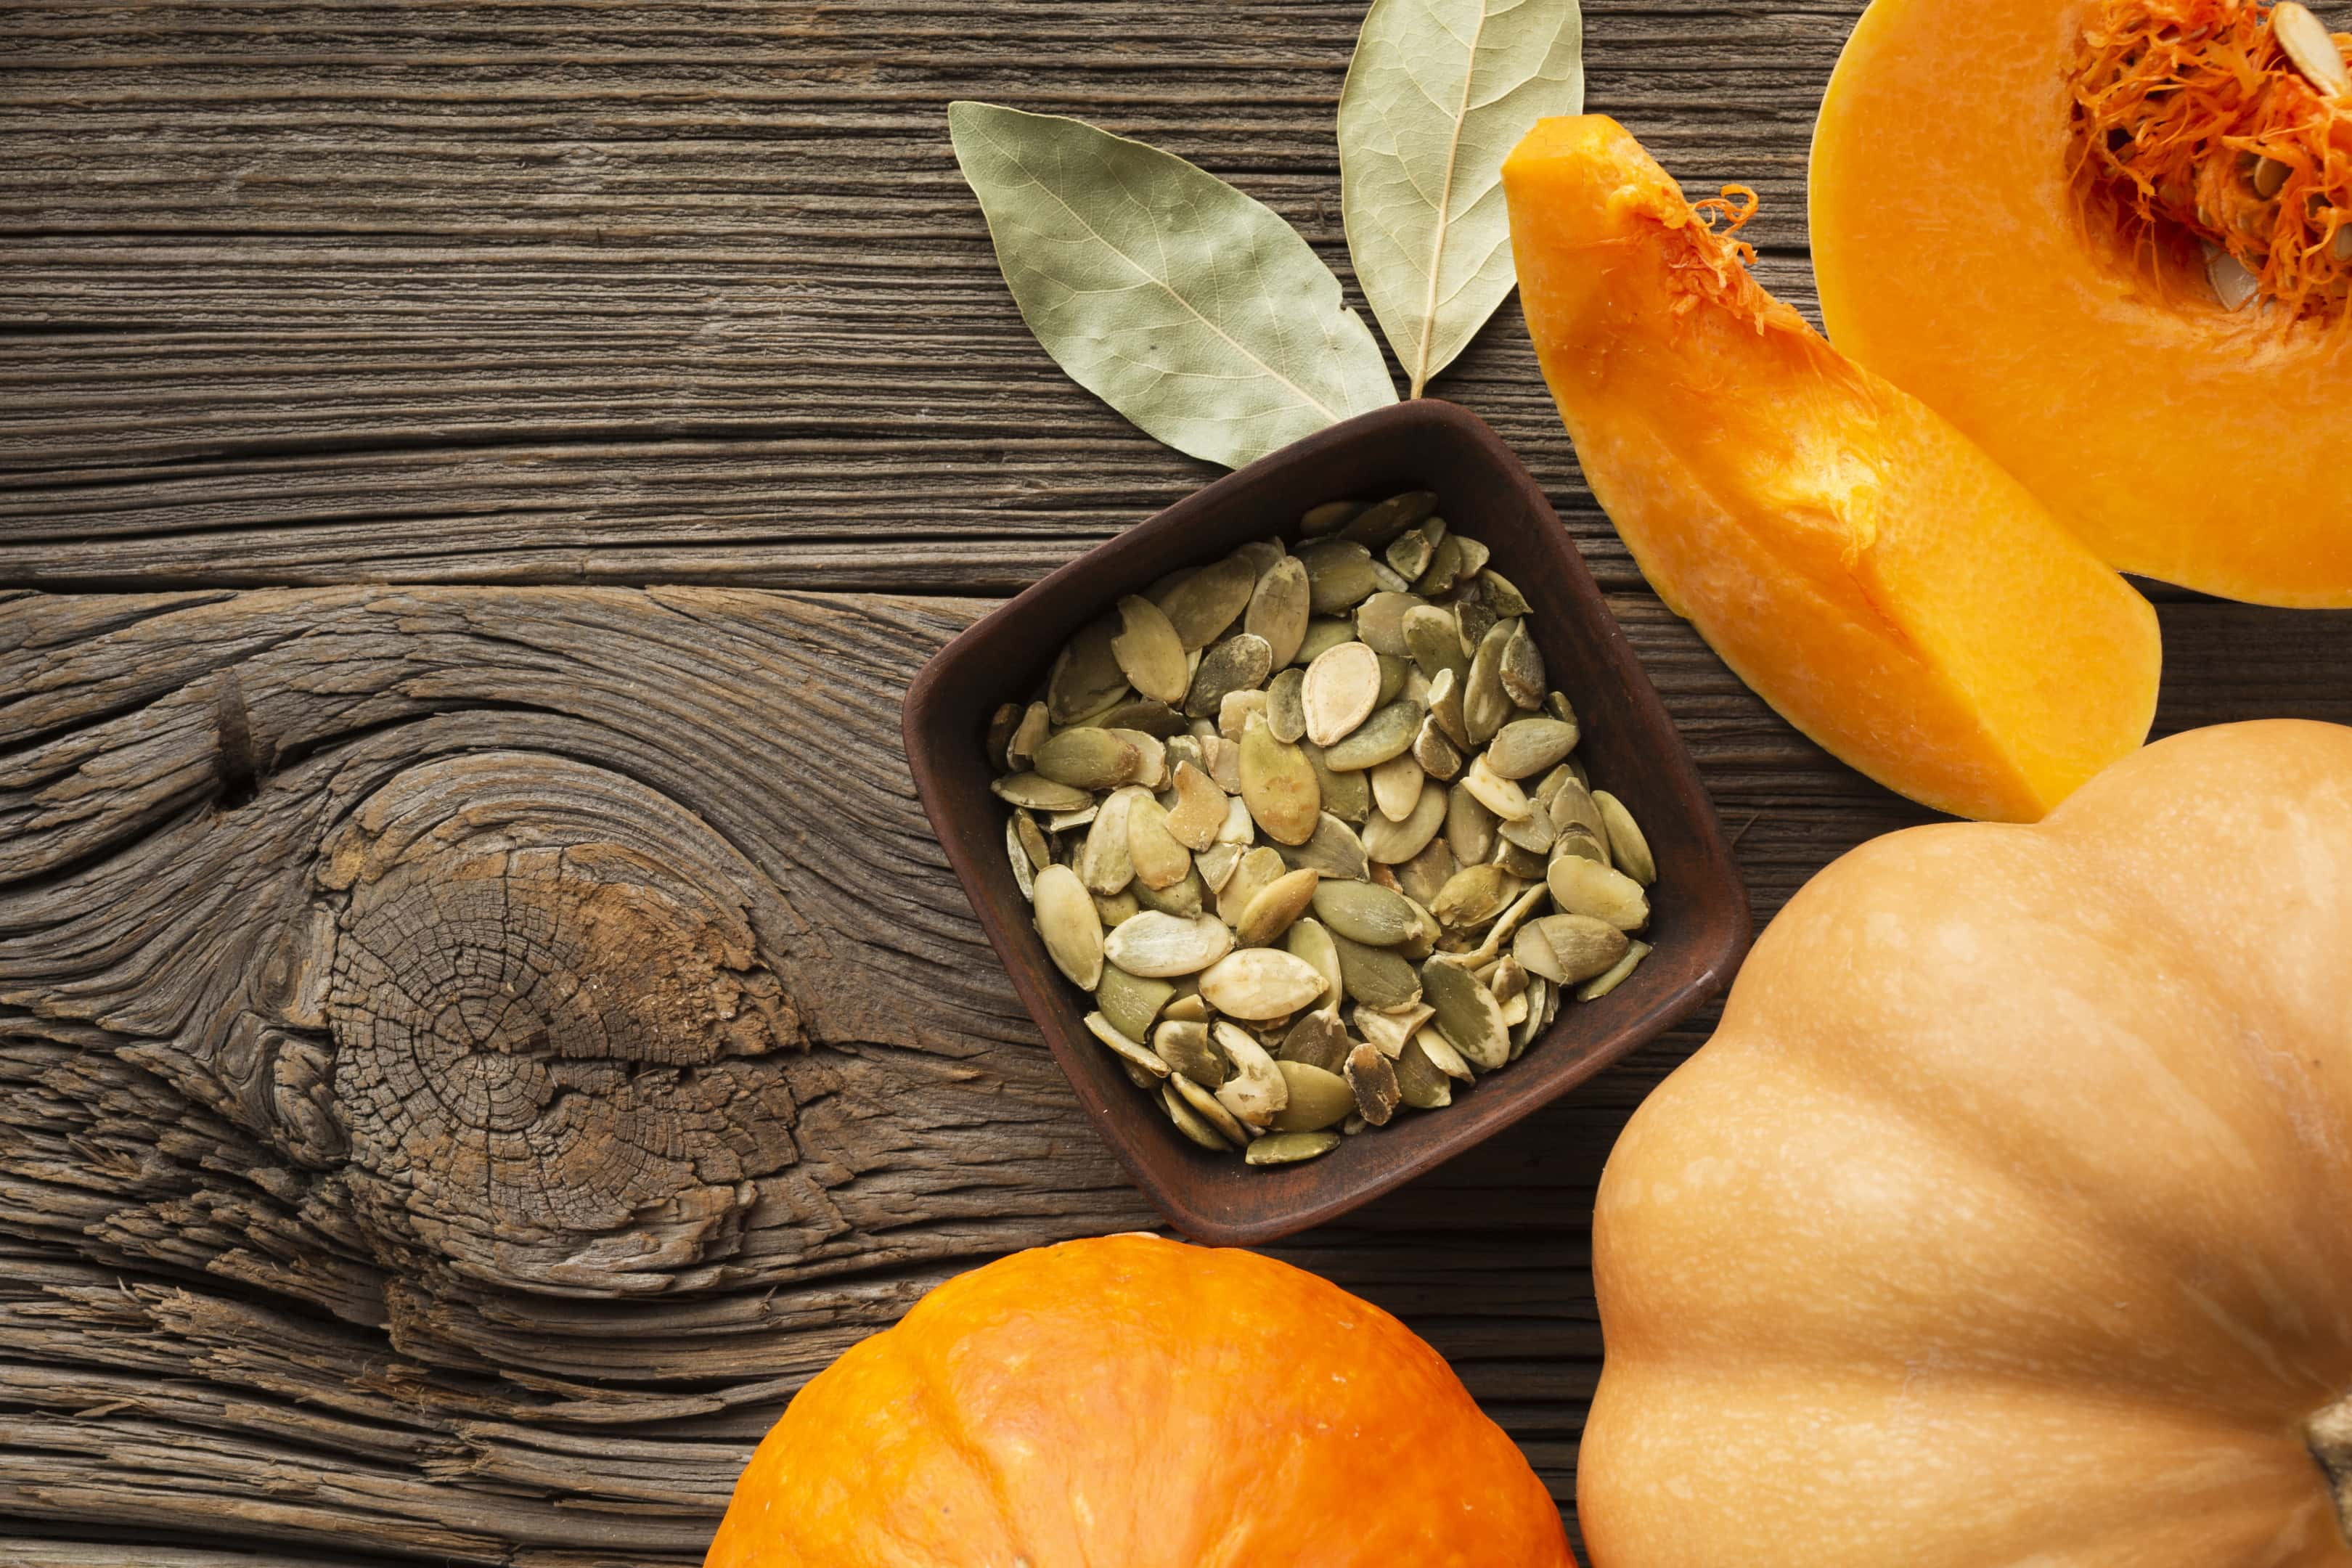 Pumpkin seeds with pumpkins on wooden table